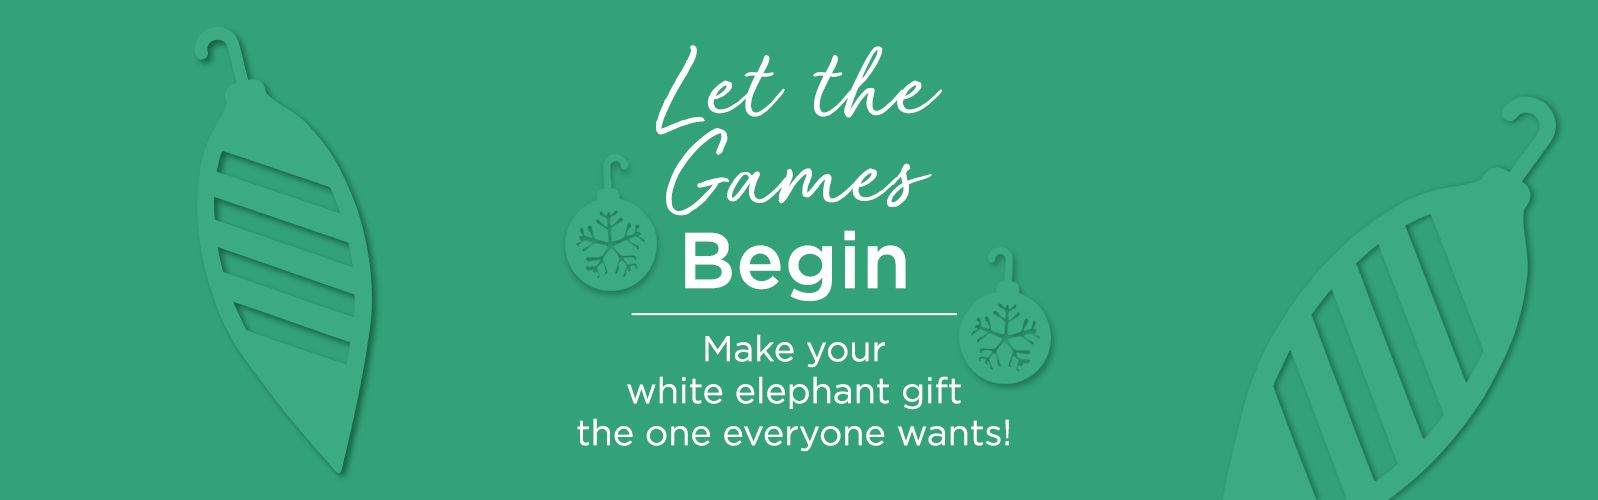 Let the Games Begin.  Make your white elephant gift the one everyone wants!